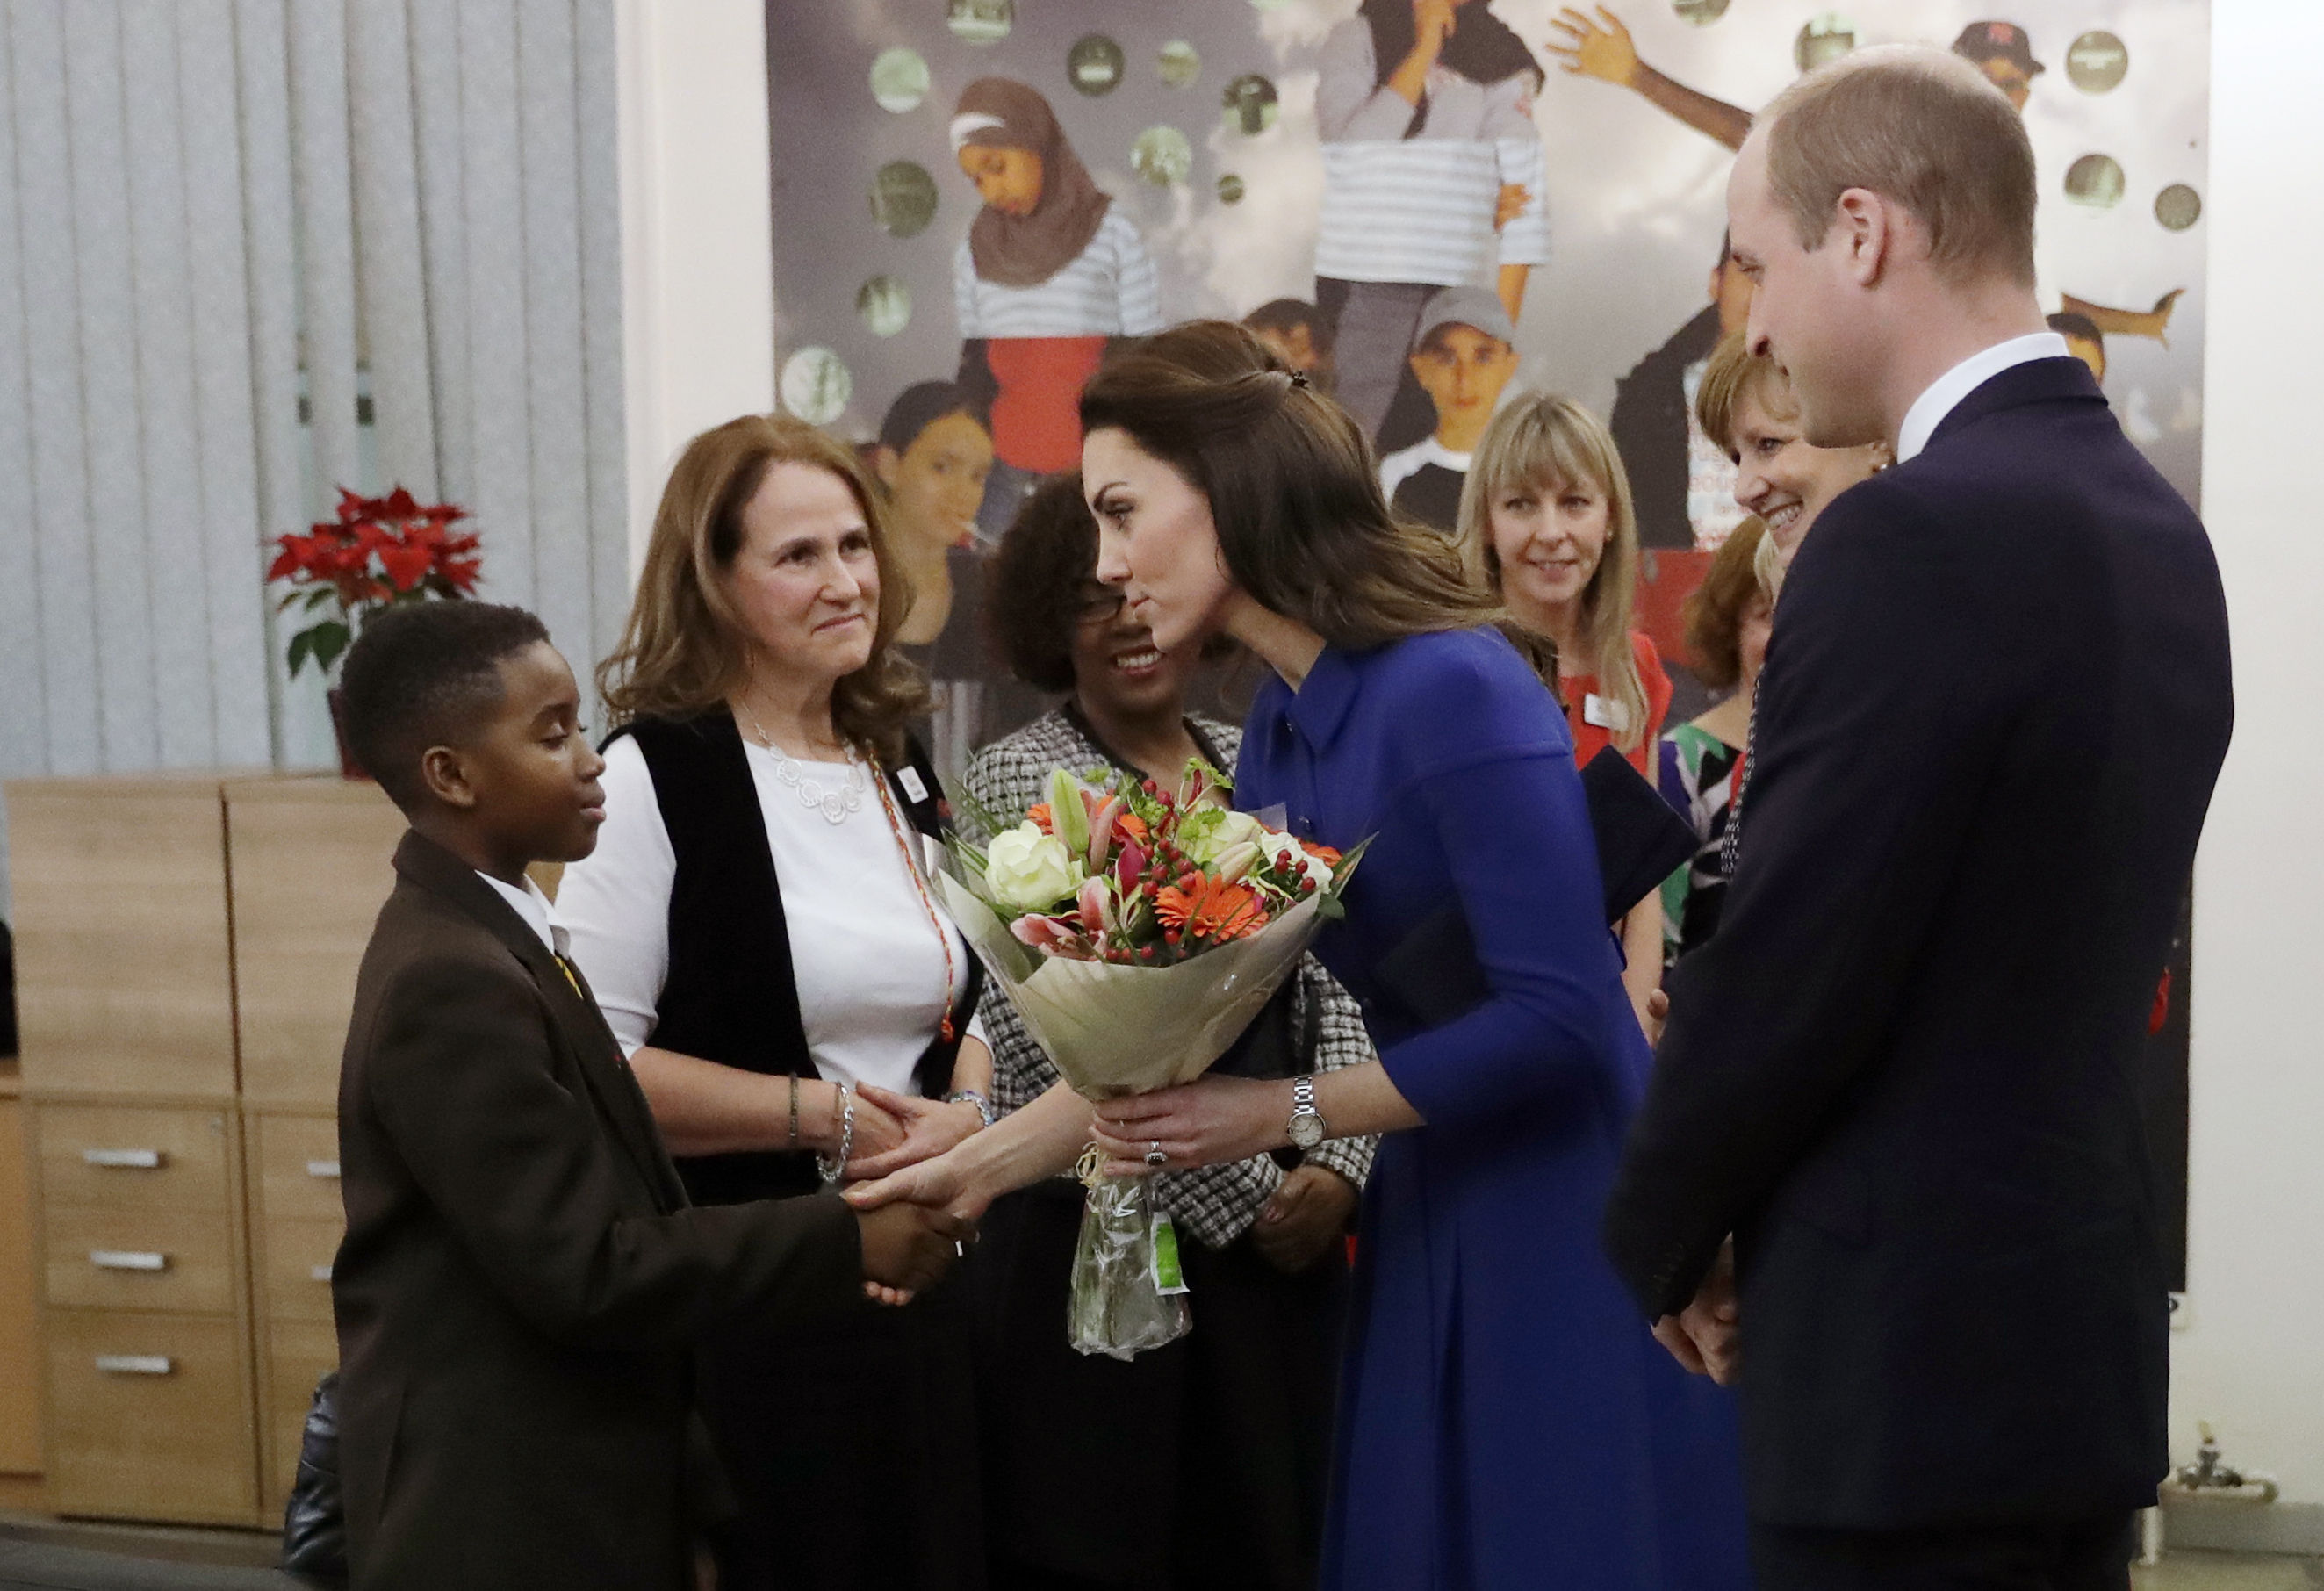 The Duke and Duchess of Cambridge visit Child Bere